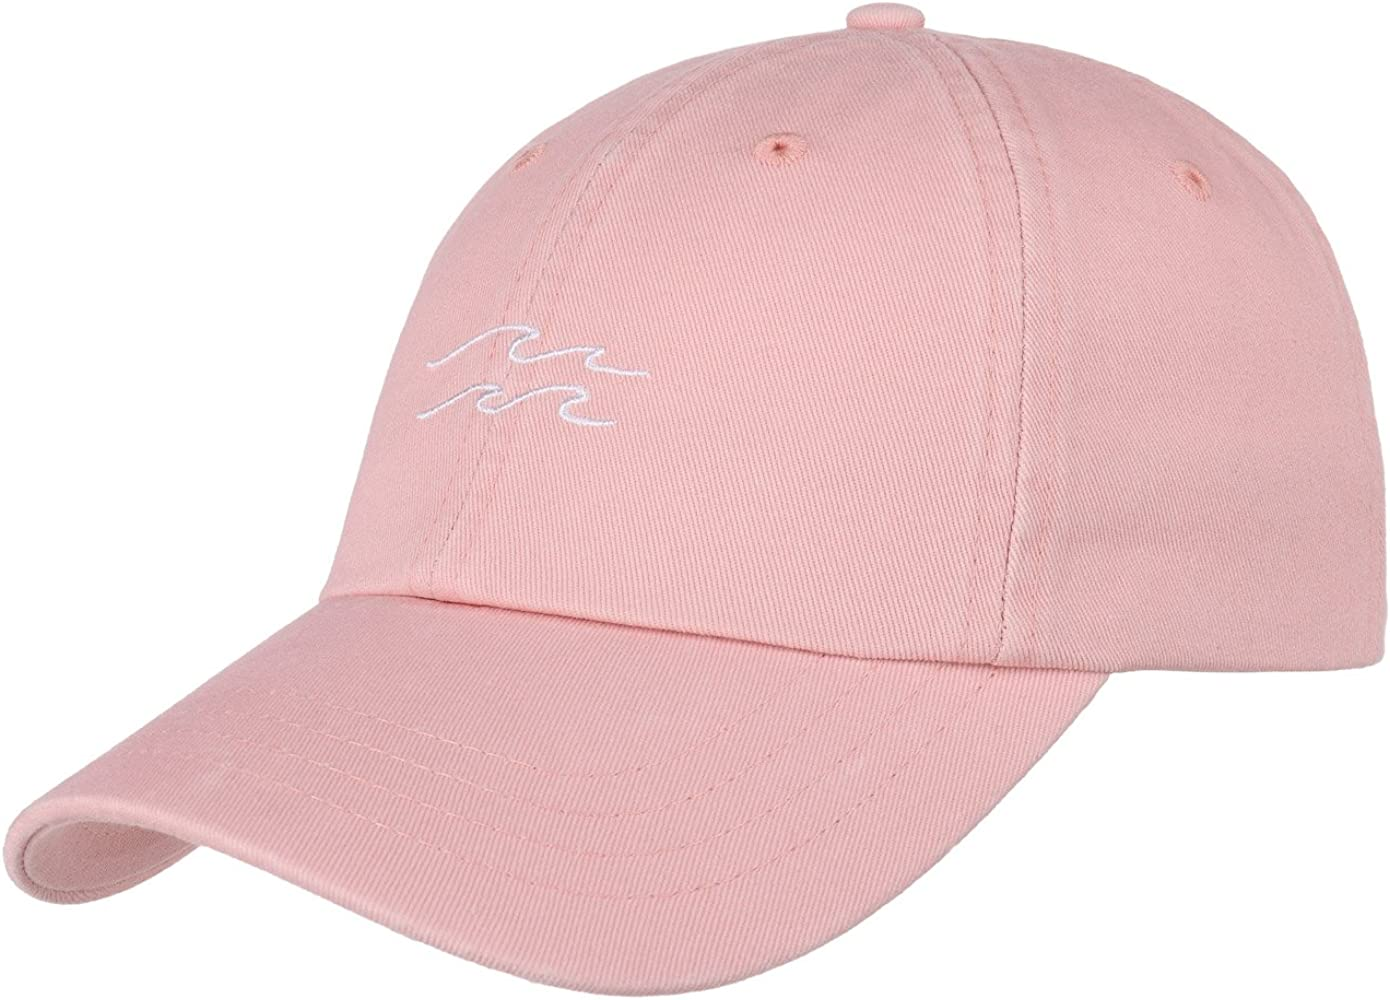 BILLABONG Essential Gorra, Mujer, Blush, Talla Única: Amazon.es ...